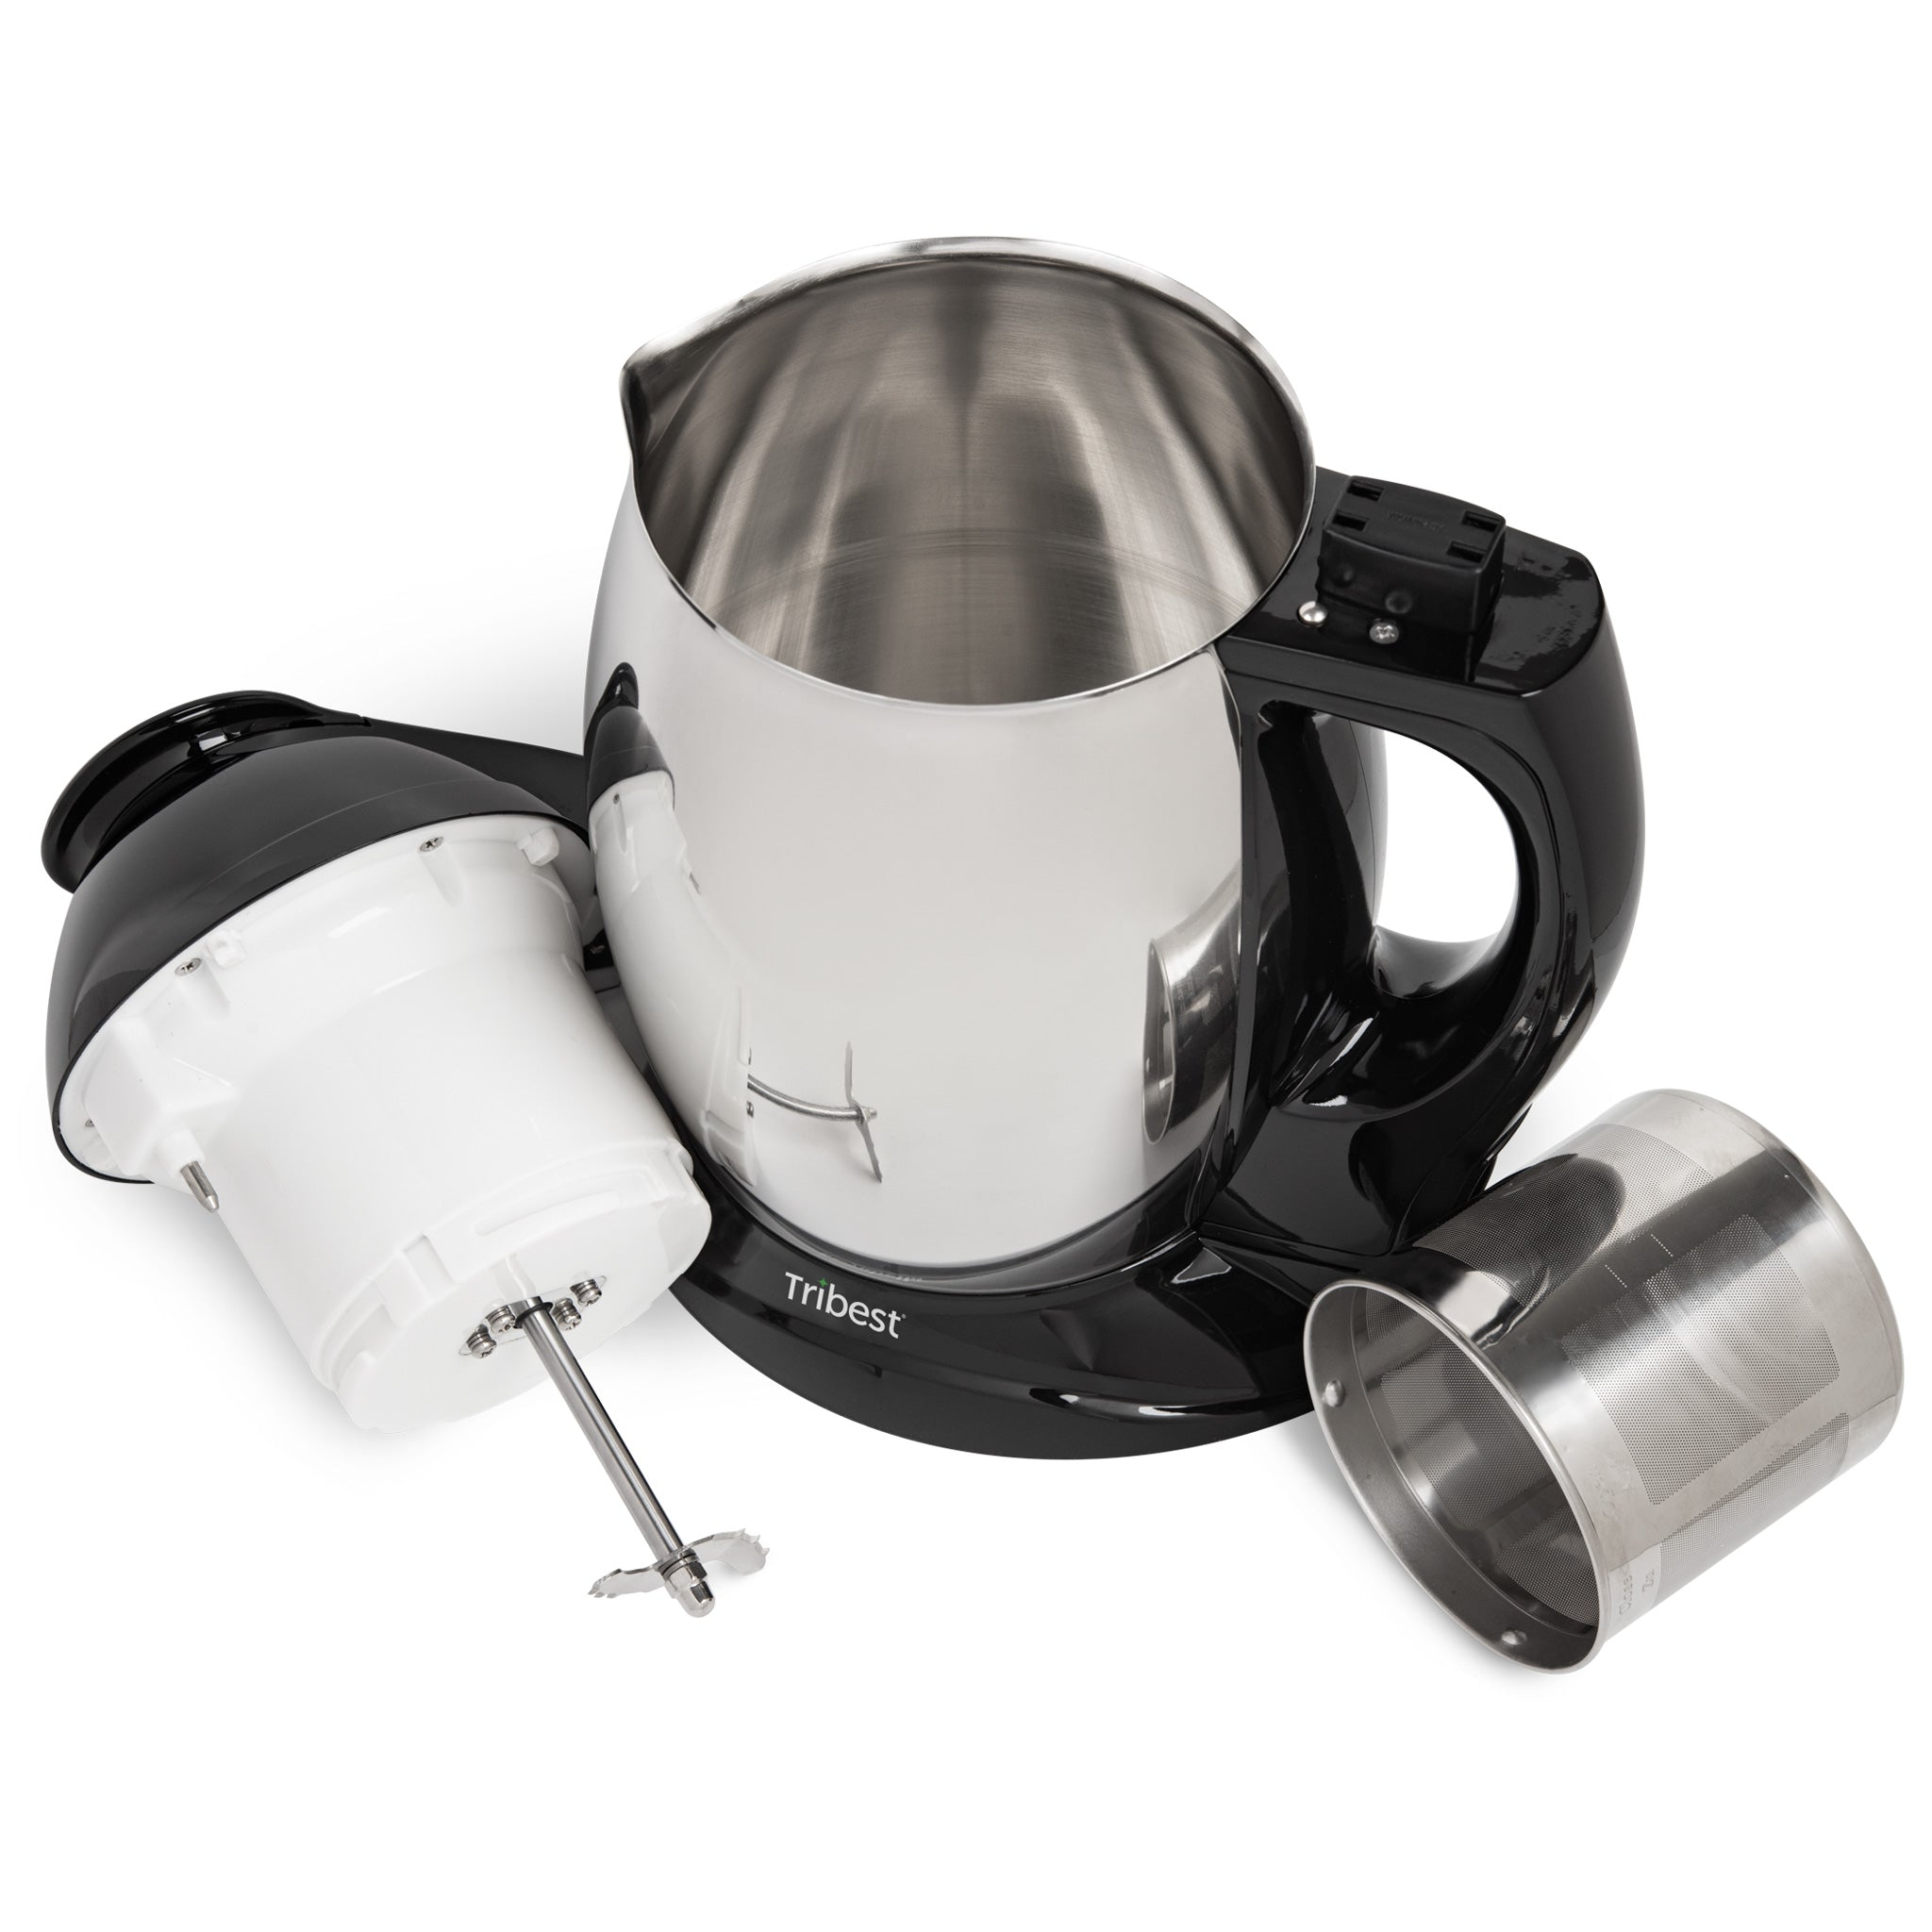 Soyabella Automatic Nut & Seed Milk Maker in Black SB-130-B -Parts - Tribest